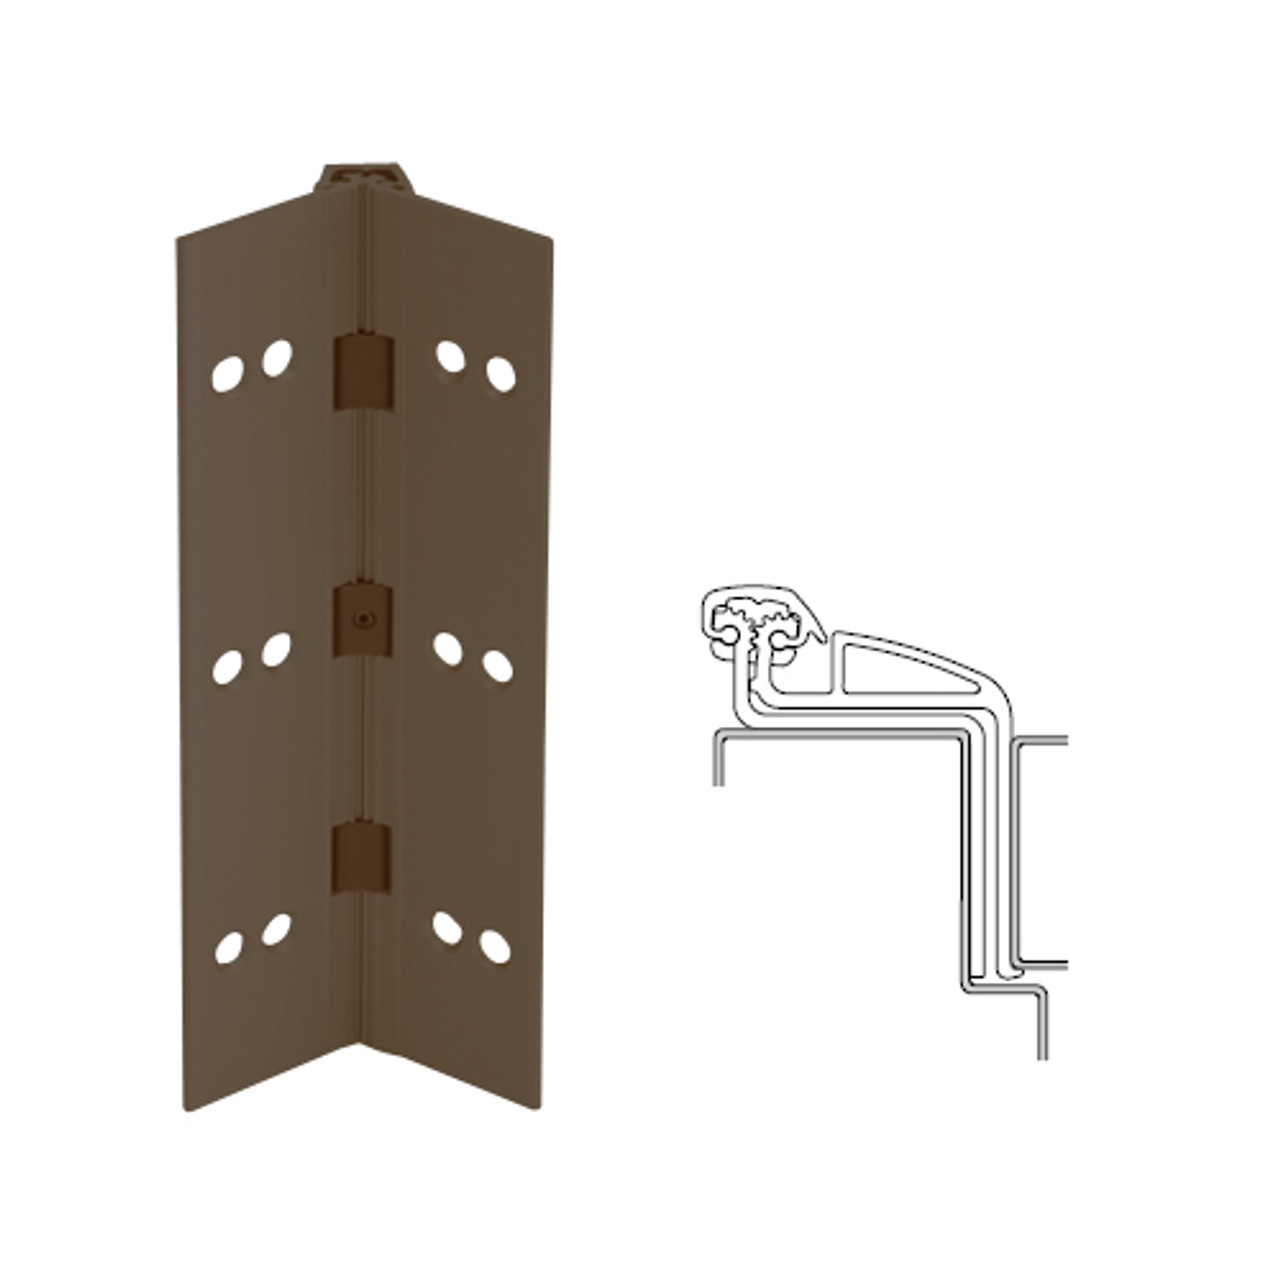 041XY-313AN-95-SECHM IVES Full Mortise Continuous Geared Hinges with Security Screws - Hex Pin Drive in Dark Bronze Anodized